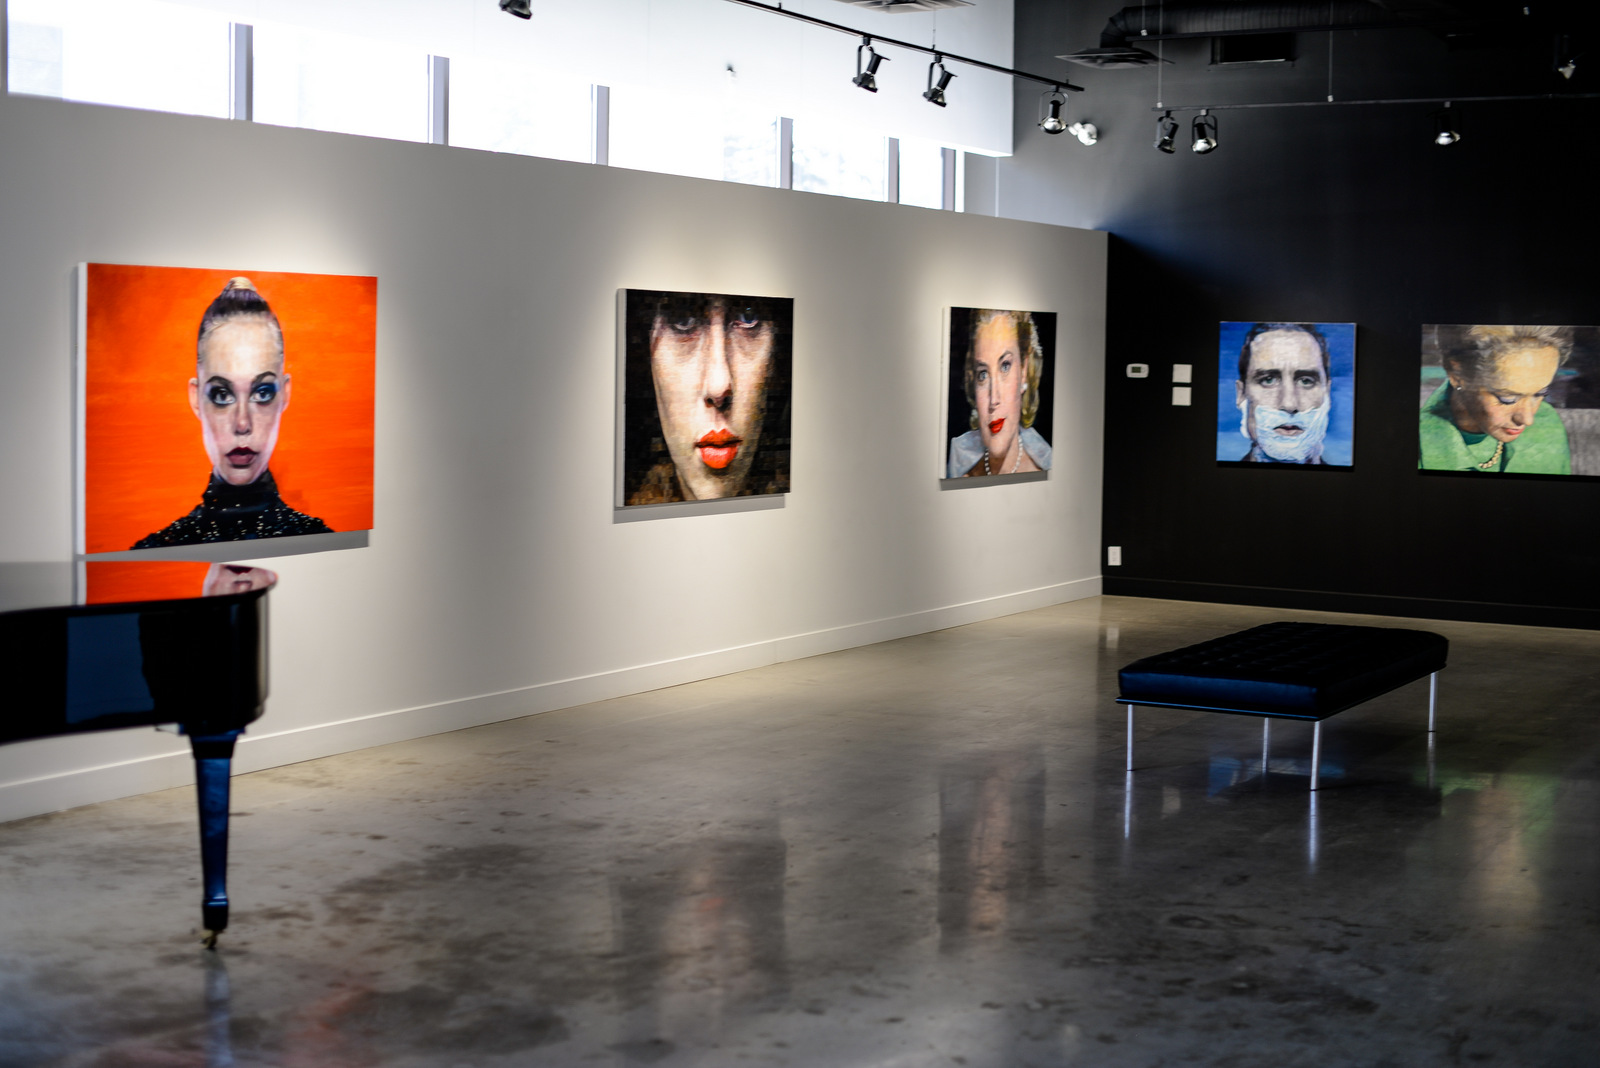 Big Screen TV – Robert Lemay Exhibition at The Front Gallery, March 22, 2018